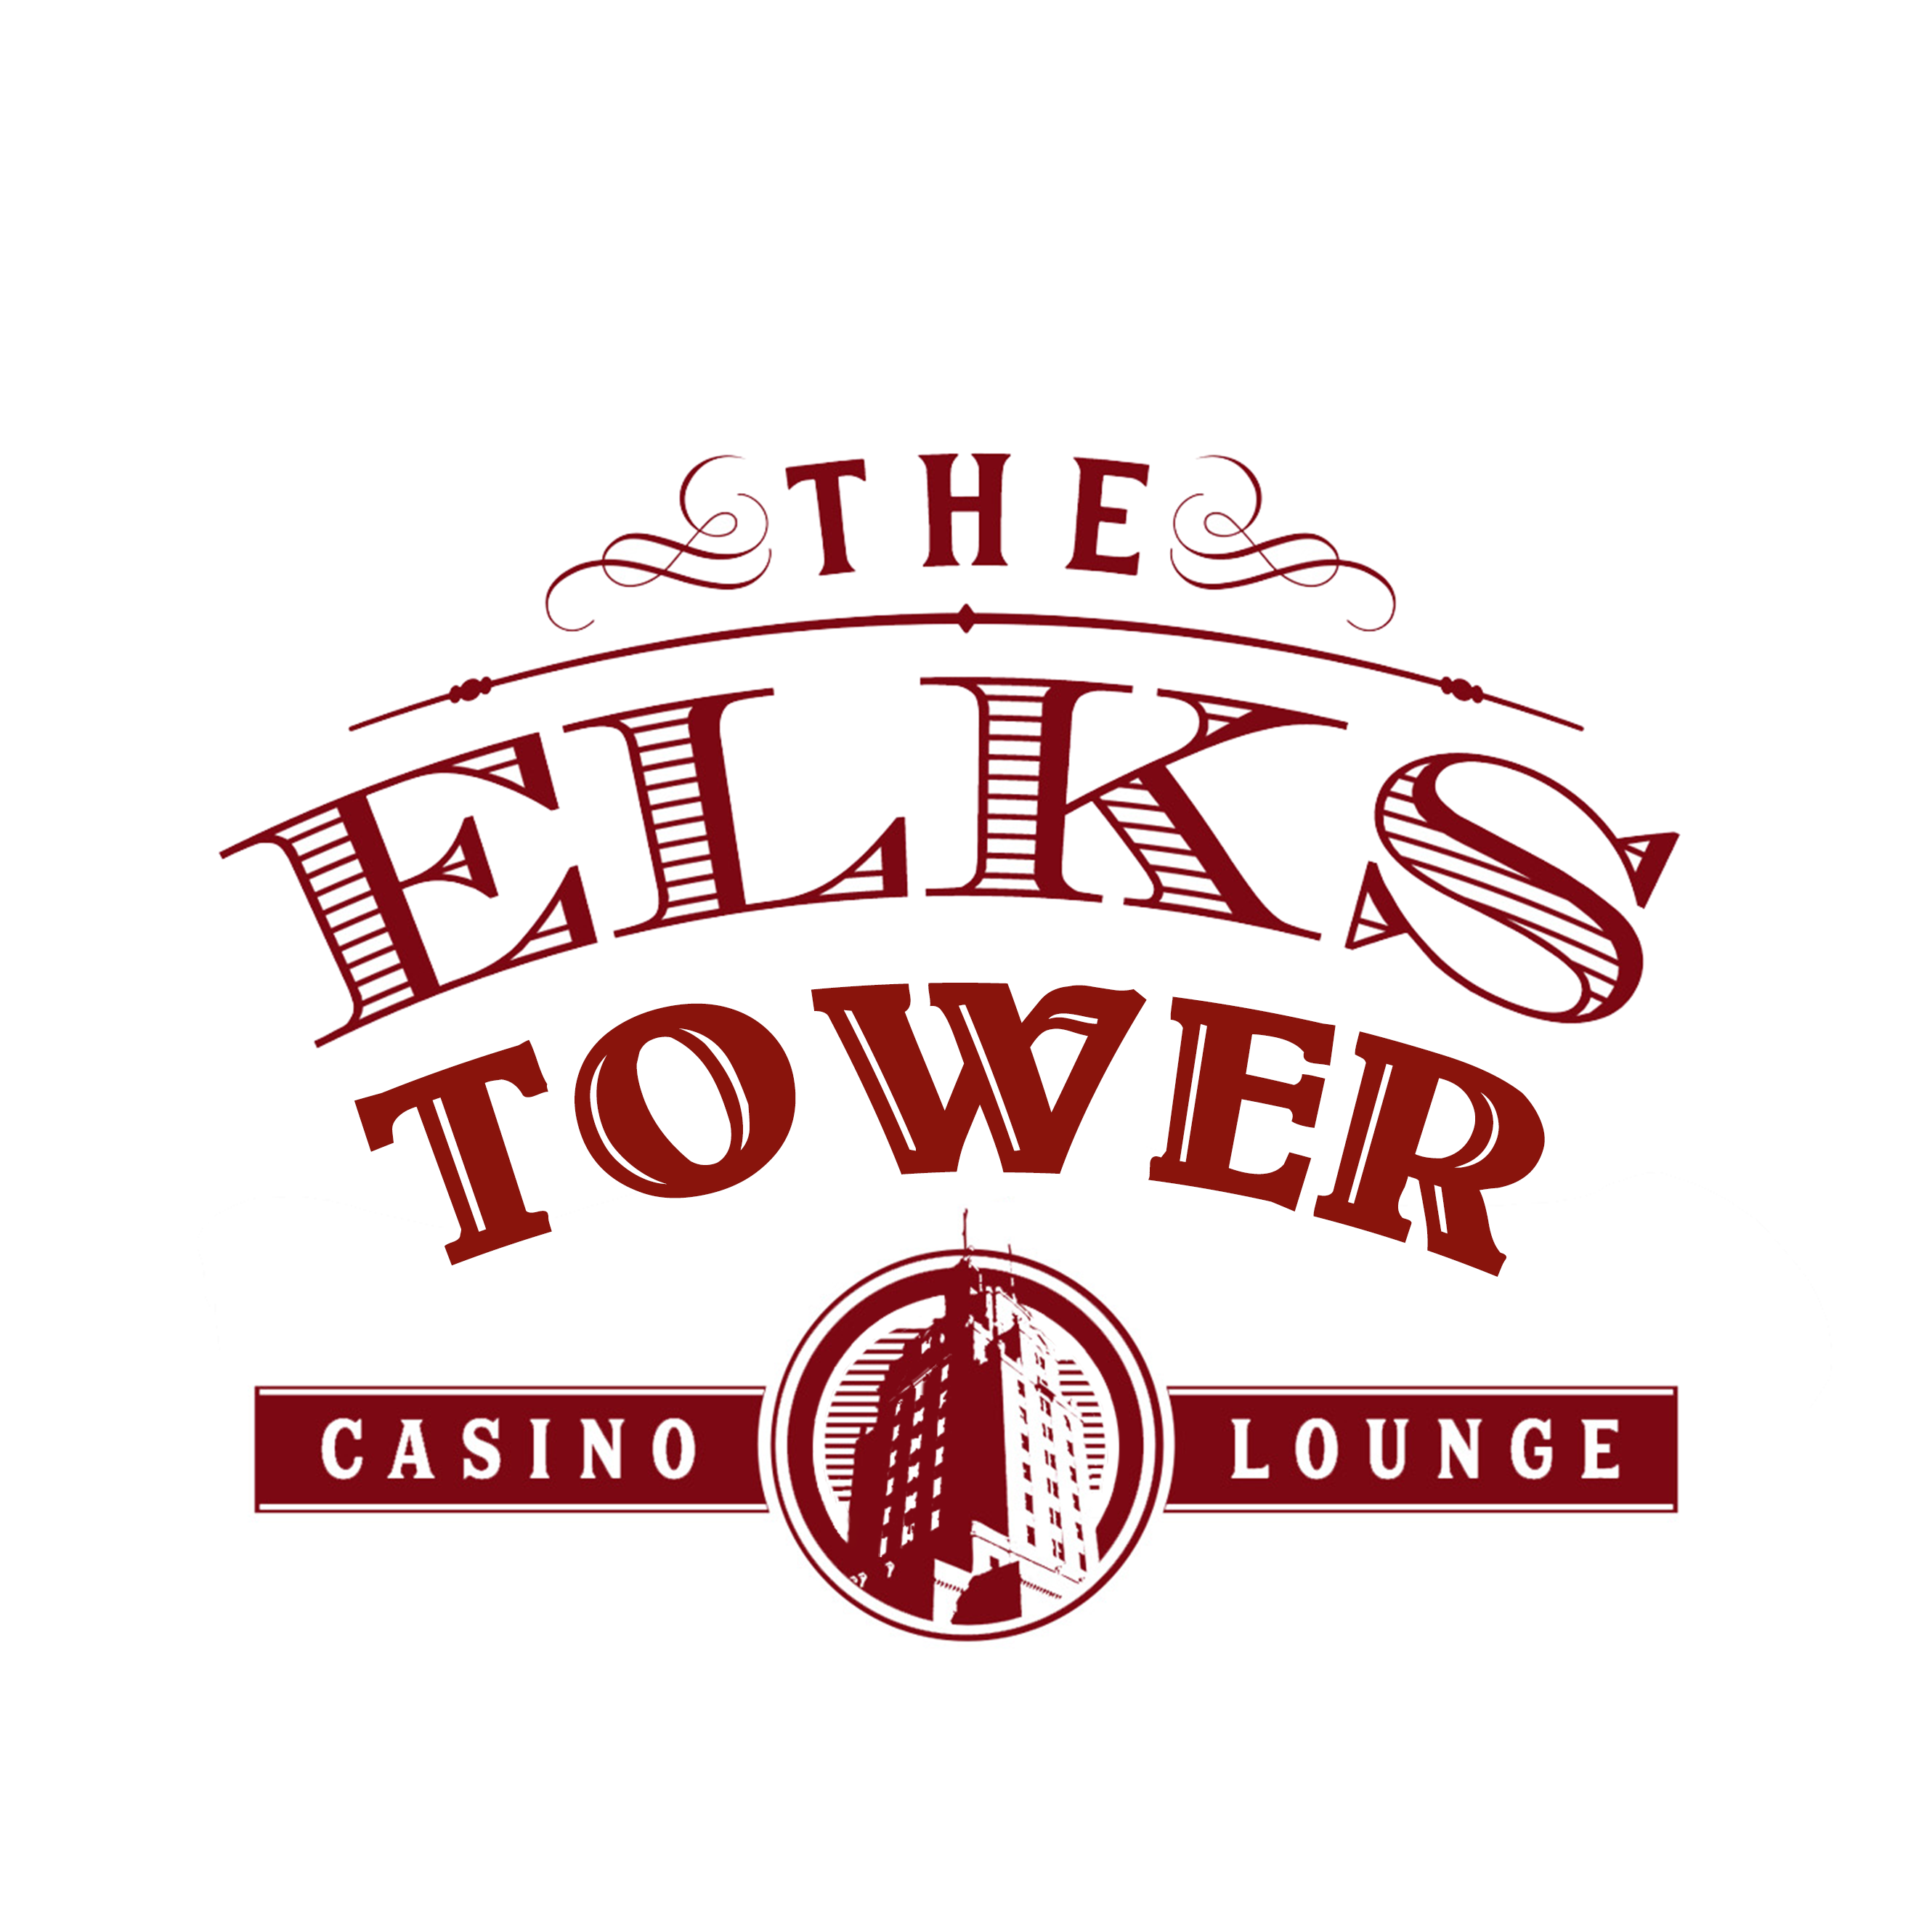 The Elks Tower Casino & Lounge Event Center